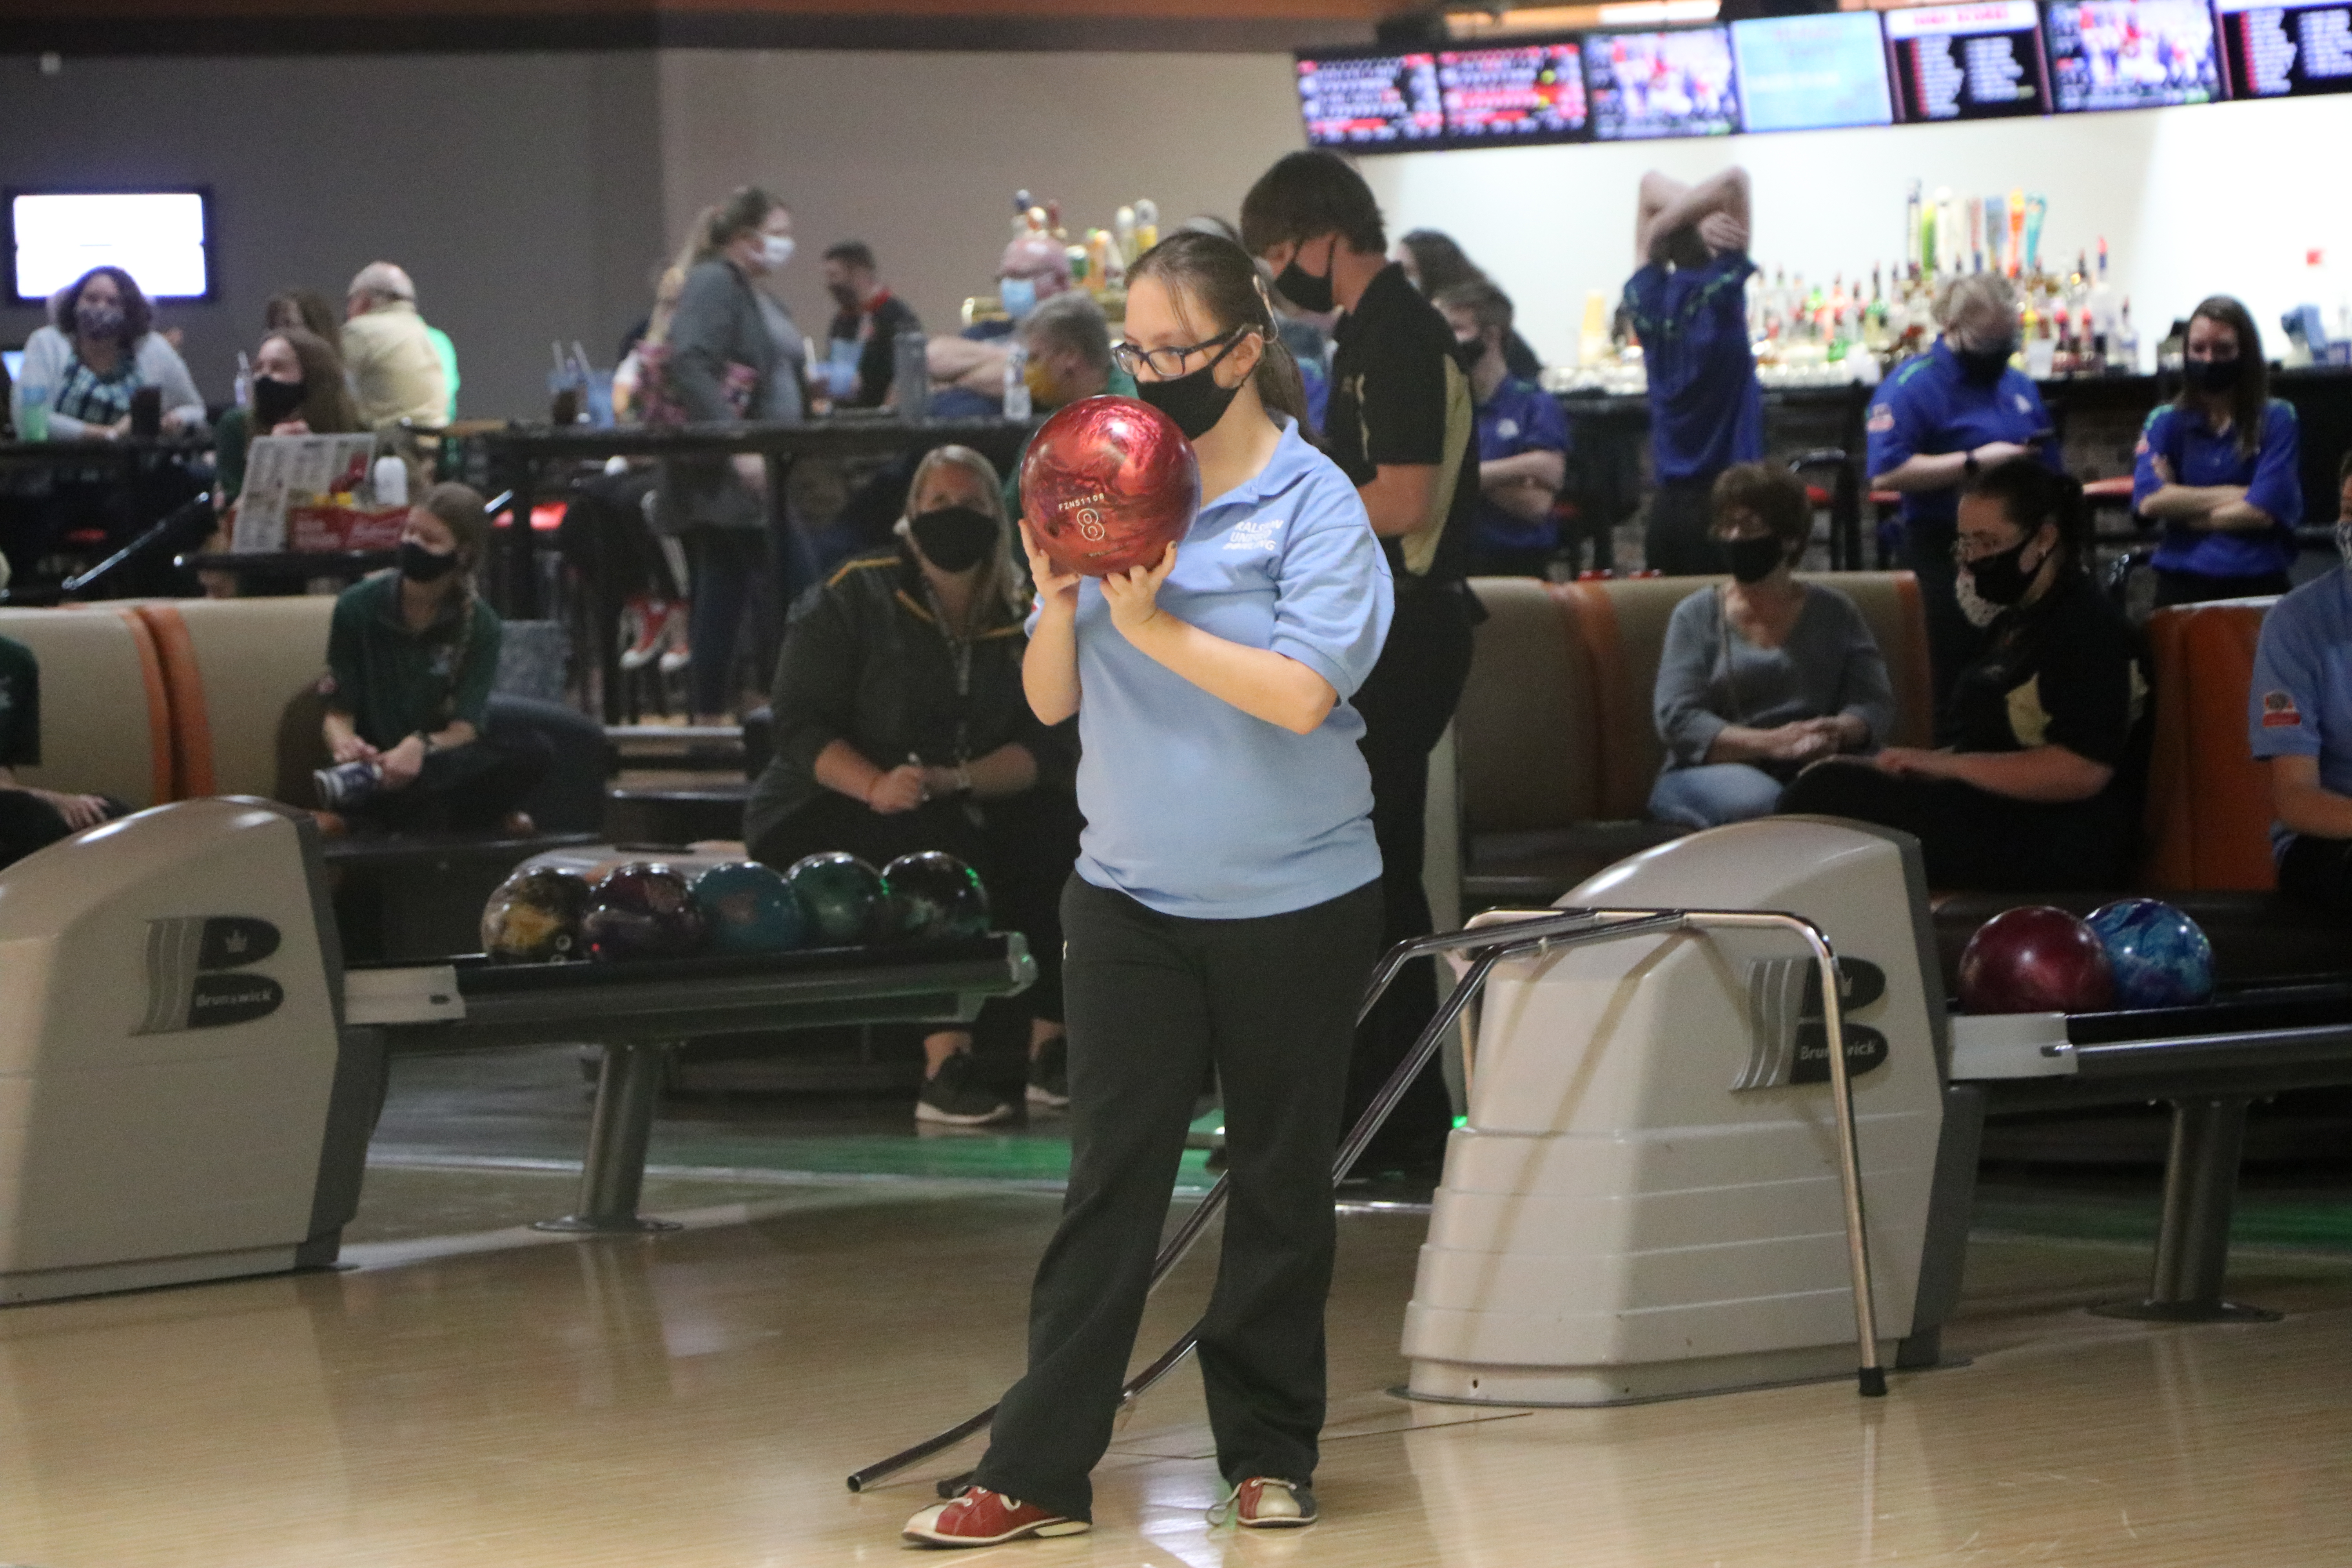 Brylee Johnson competes for the Ralston unified bowling team. (Pam Castaneda-Martinez)